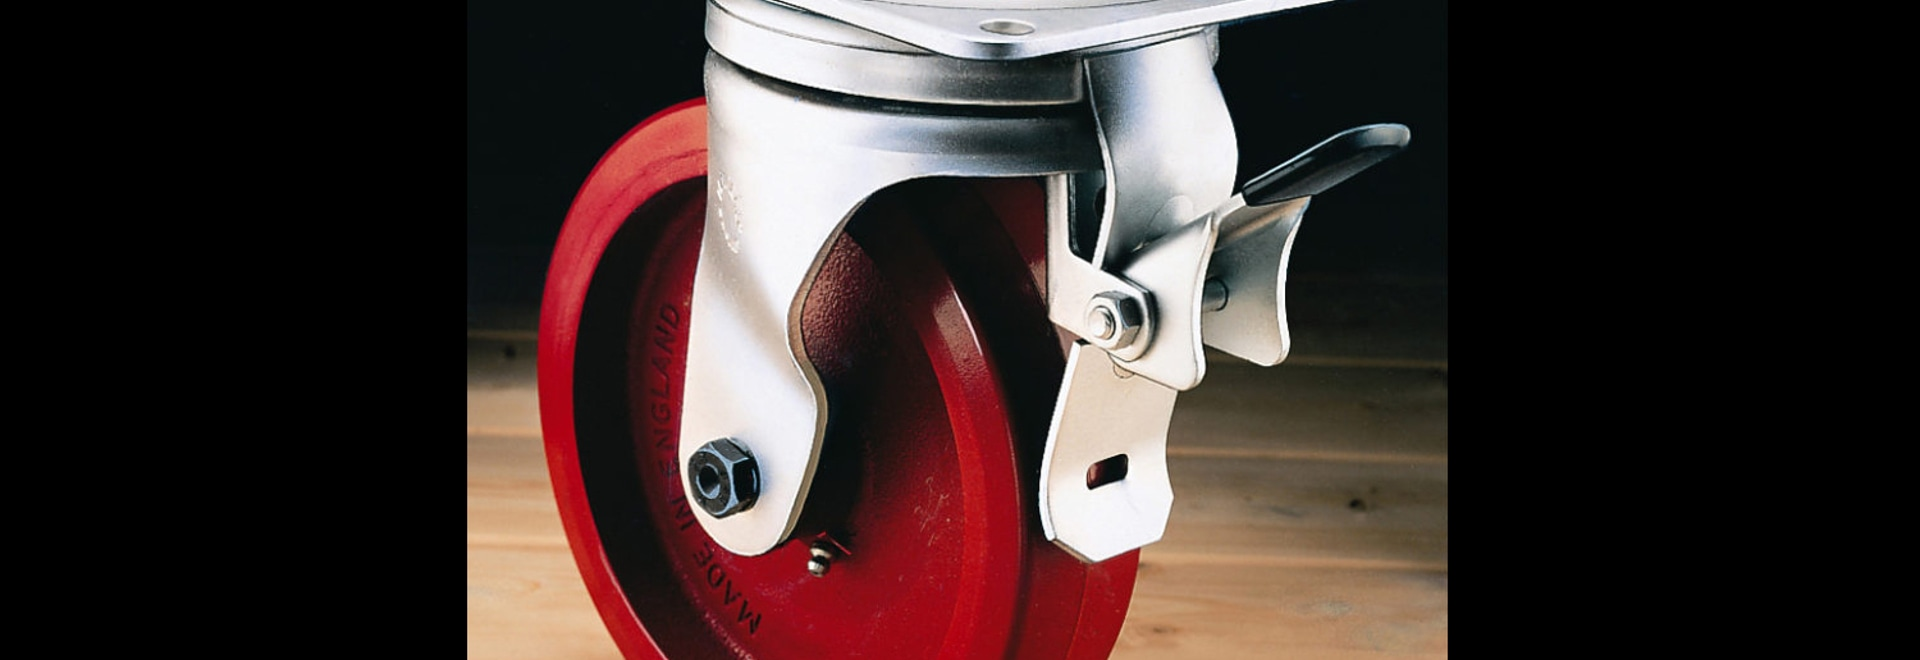 Swivel Caster Feature locking swivel and wheel